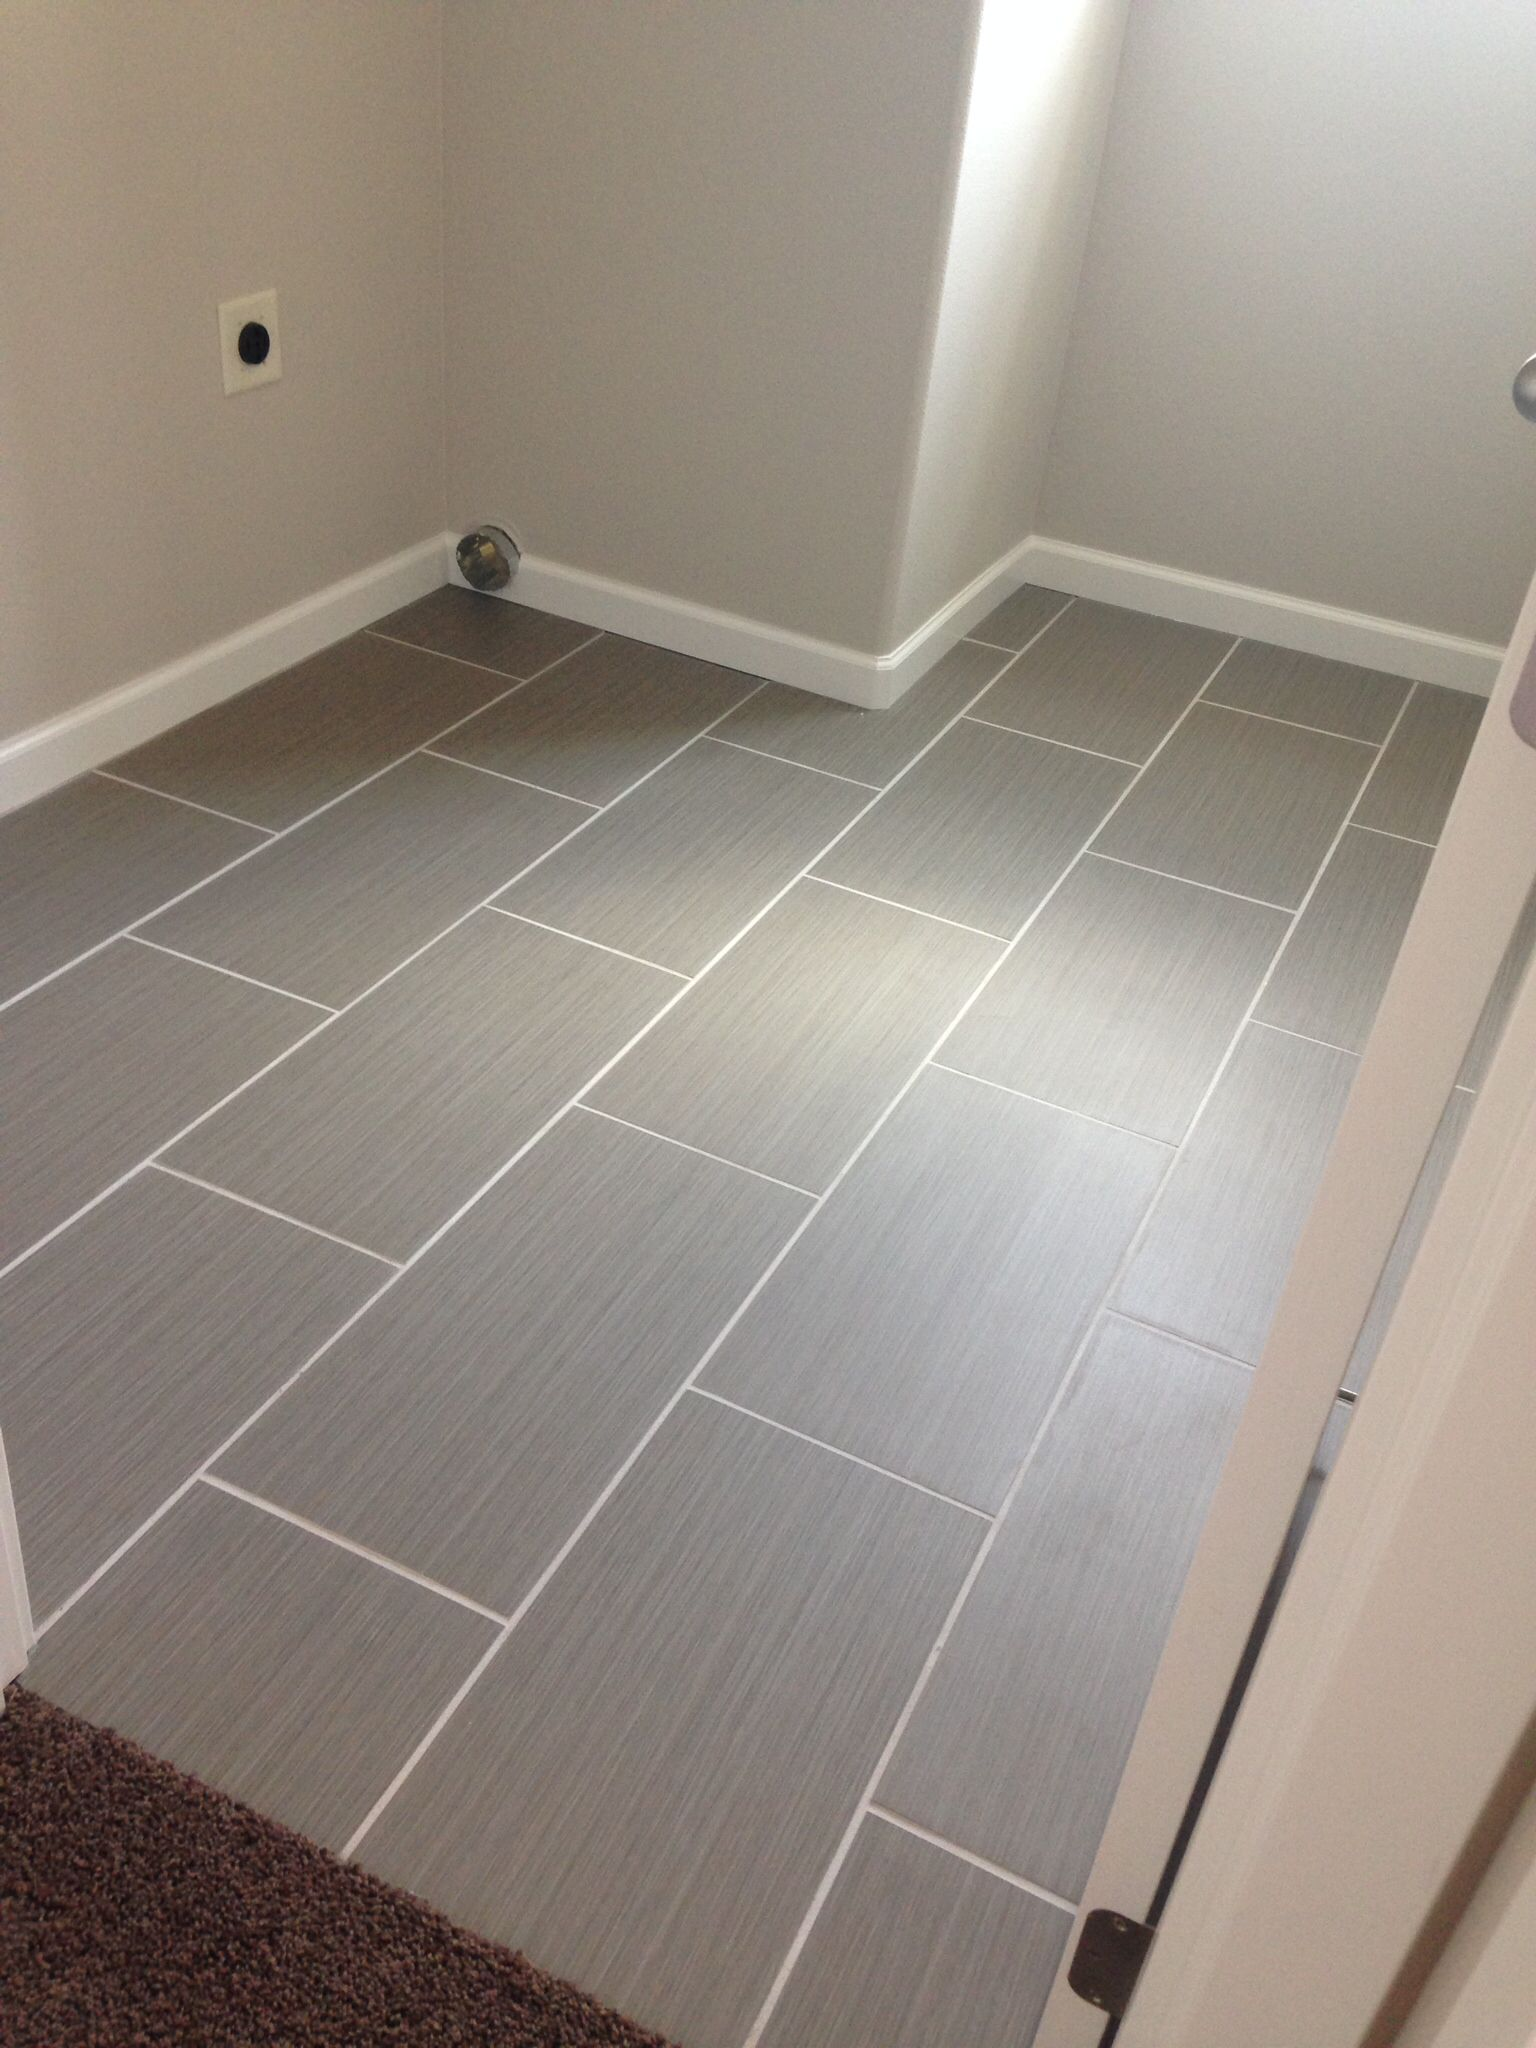 Gray tile from costco 721343 neo tile 1 39 2 39 porcelain tile for Bathroom floor ceramic tile designs